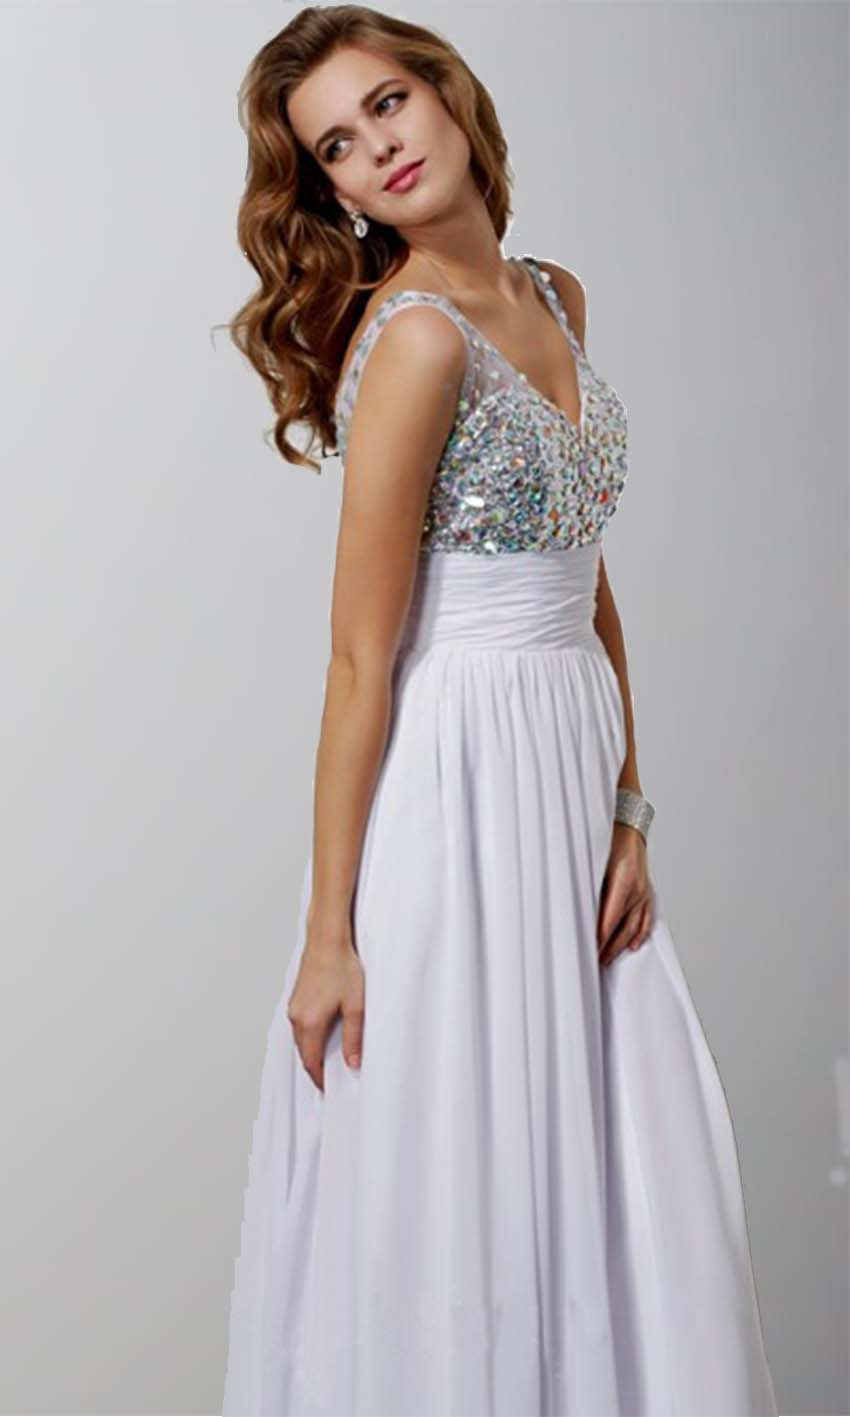 £95.00 : cheap prom dresses uk, bridesmaid dresses, 2014 prom & evening dresses, look for cheap elegant prom dresses 2014, cocktail gowns, or dresses for special occasions? kissprom.co.uk offers various bridesmaid dresses, evening dress, free shipping to uk etc.